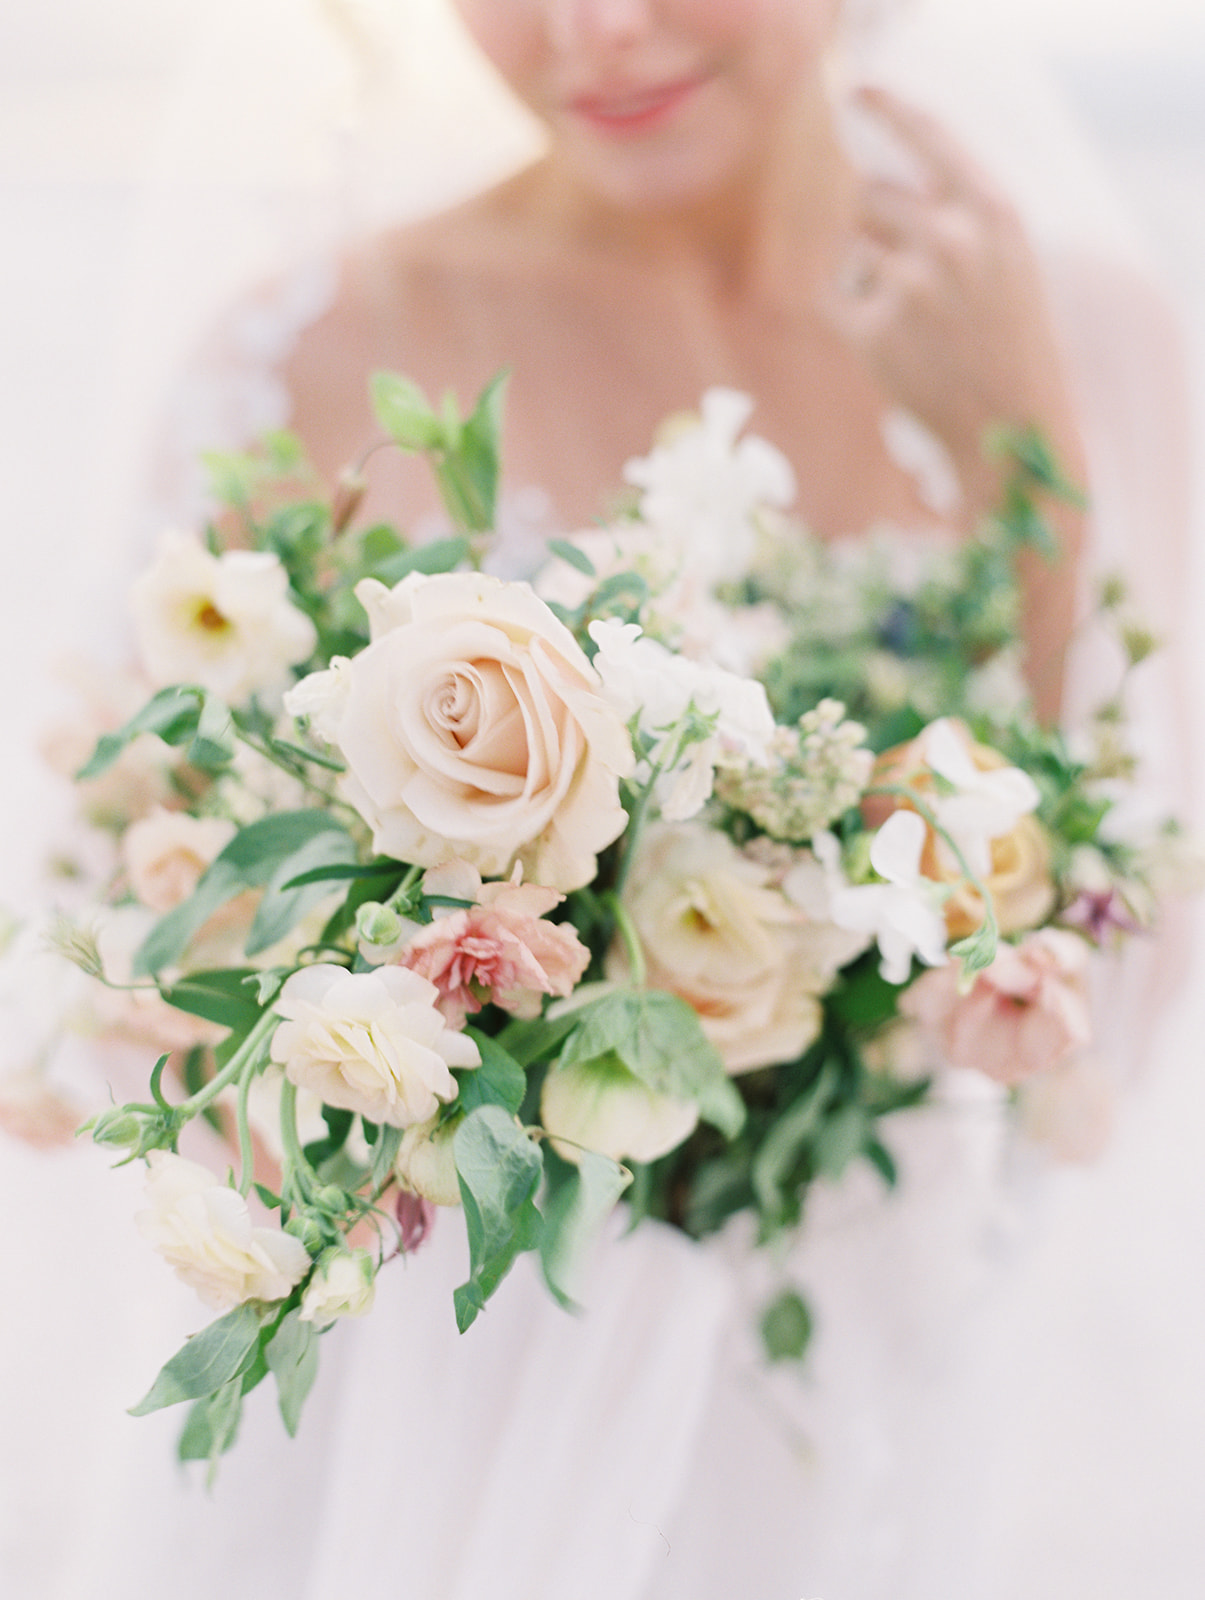 Timeless elegant bridal bouquet by Finding Flora